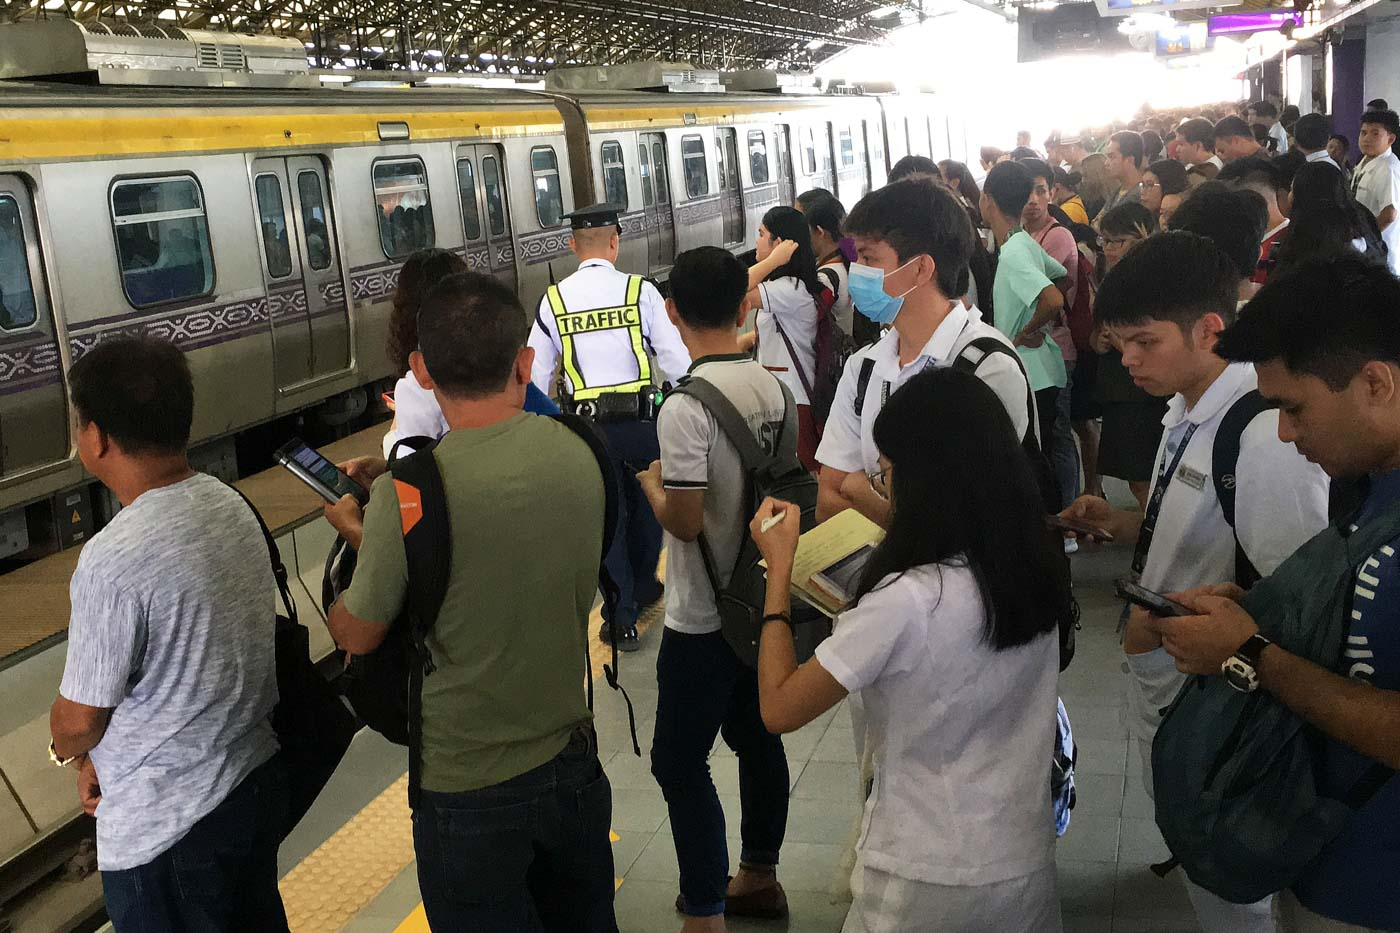 DOUBLE THE TIME. Commuters coming from Marikina says the amount of people waiting for PUV rides have doubled, and so did their waiting time as well. Photo by Ben Nabong/Rappler